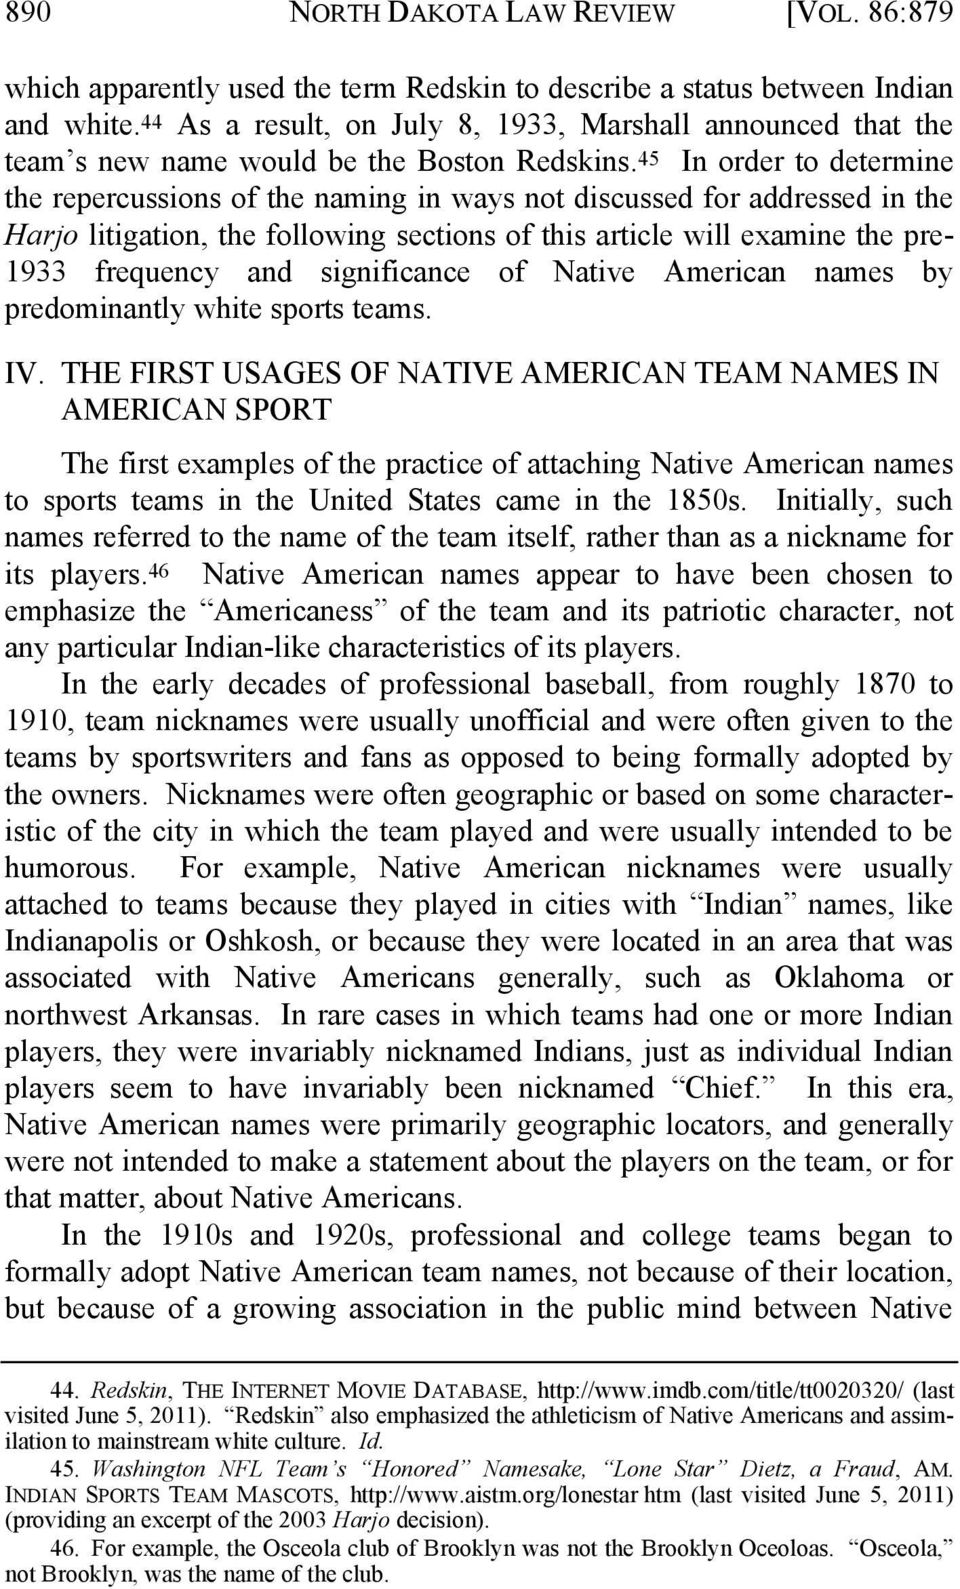 45 In order to determine the repercussions of the naming in ways not discussed for addressed in the Harjo litigation, the following sections of this article will examine the pre- 1933 frequency and